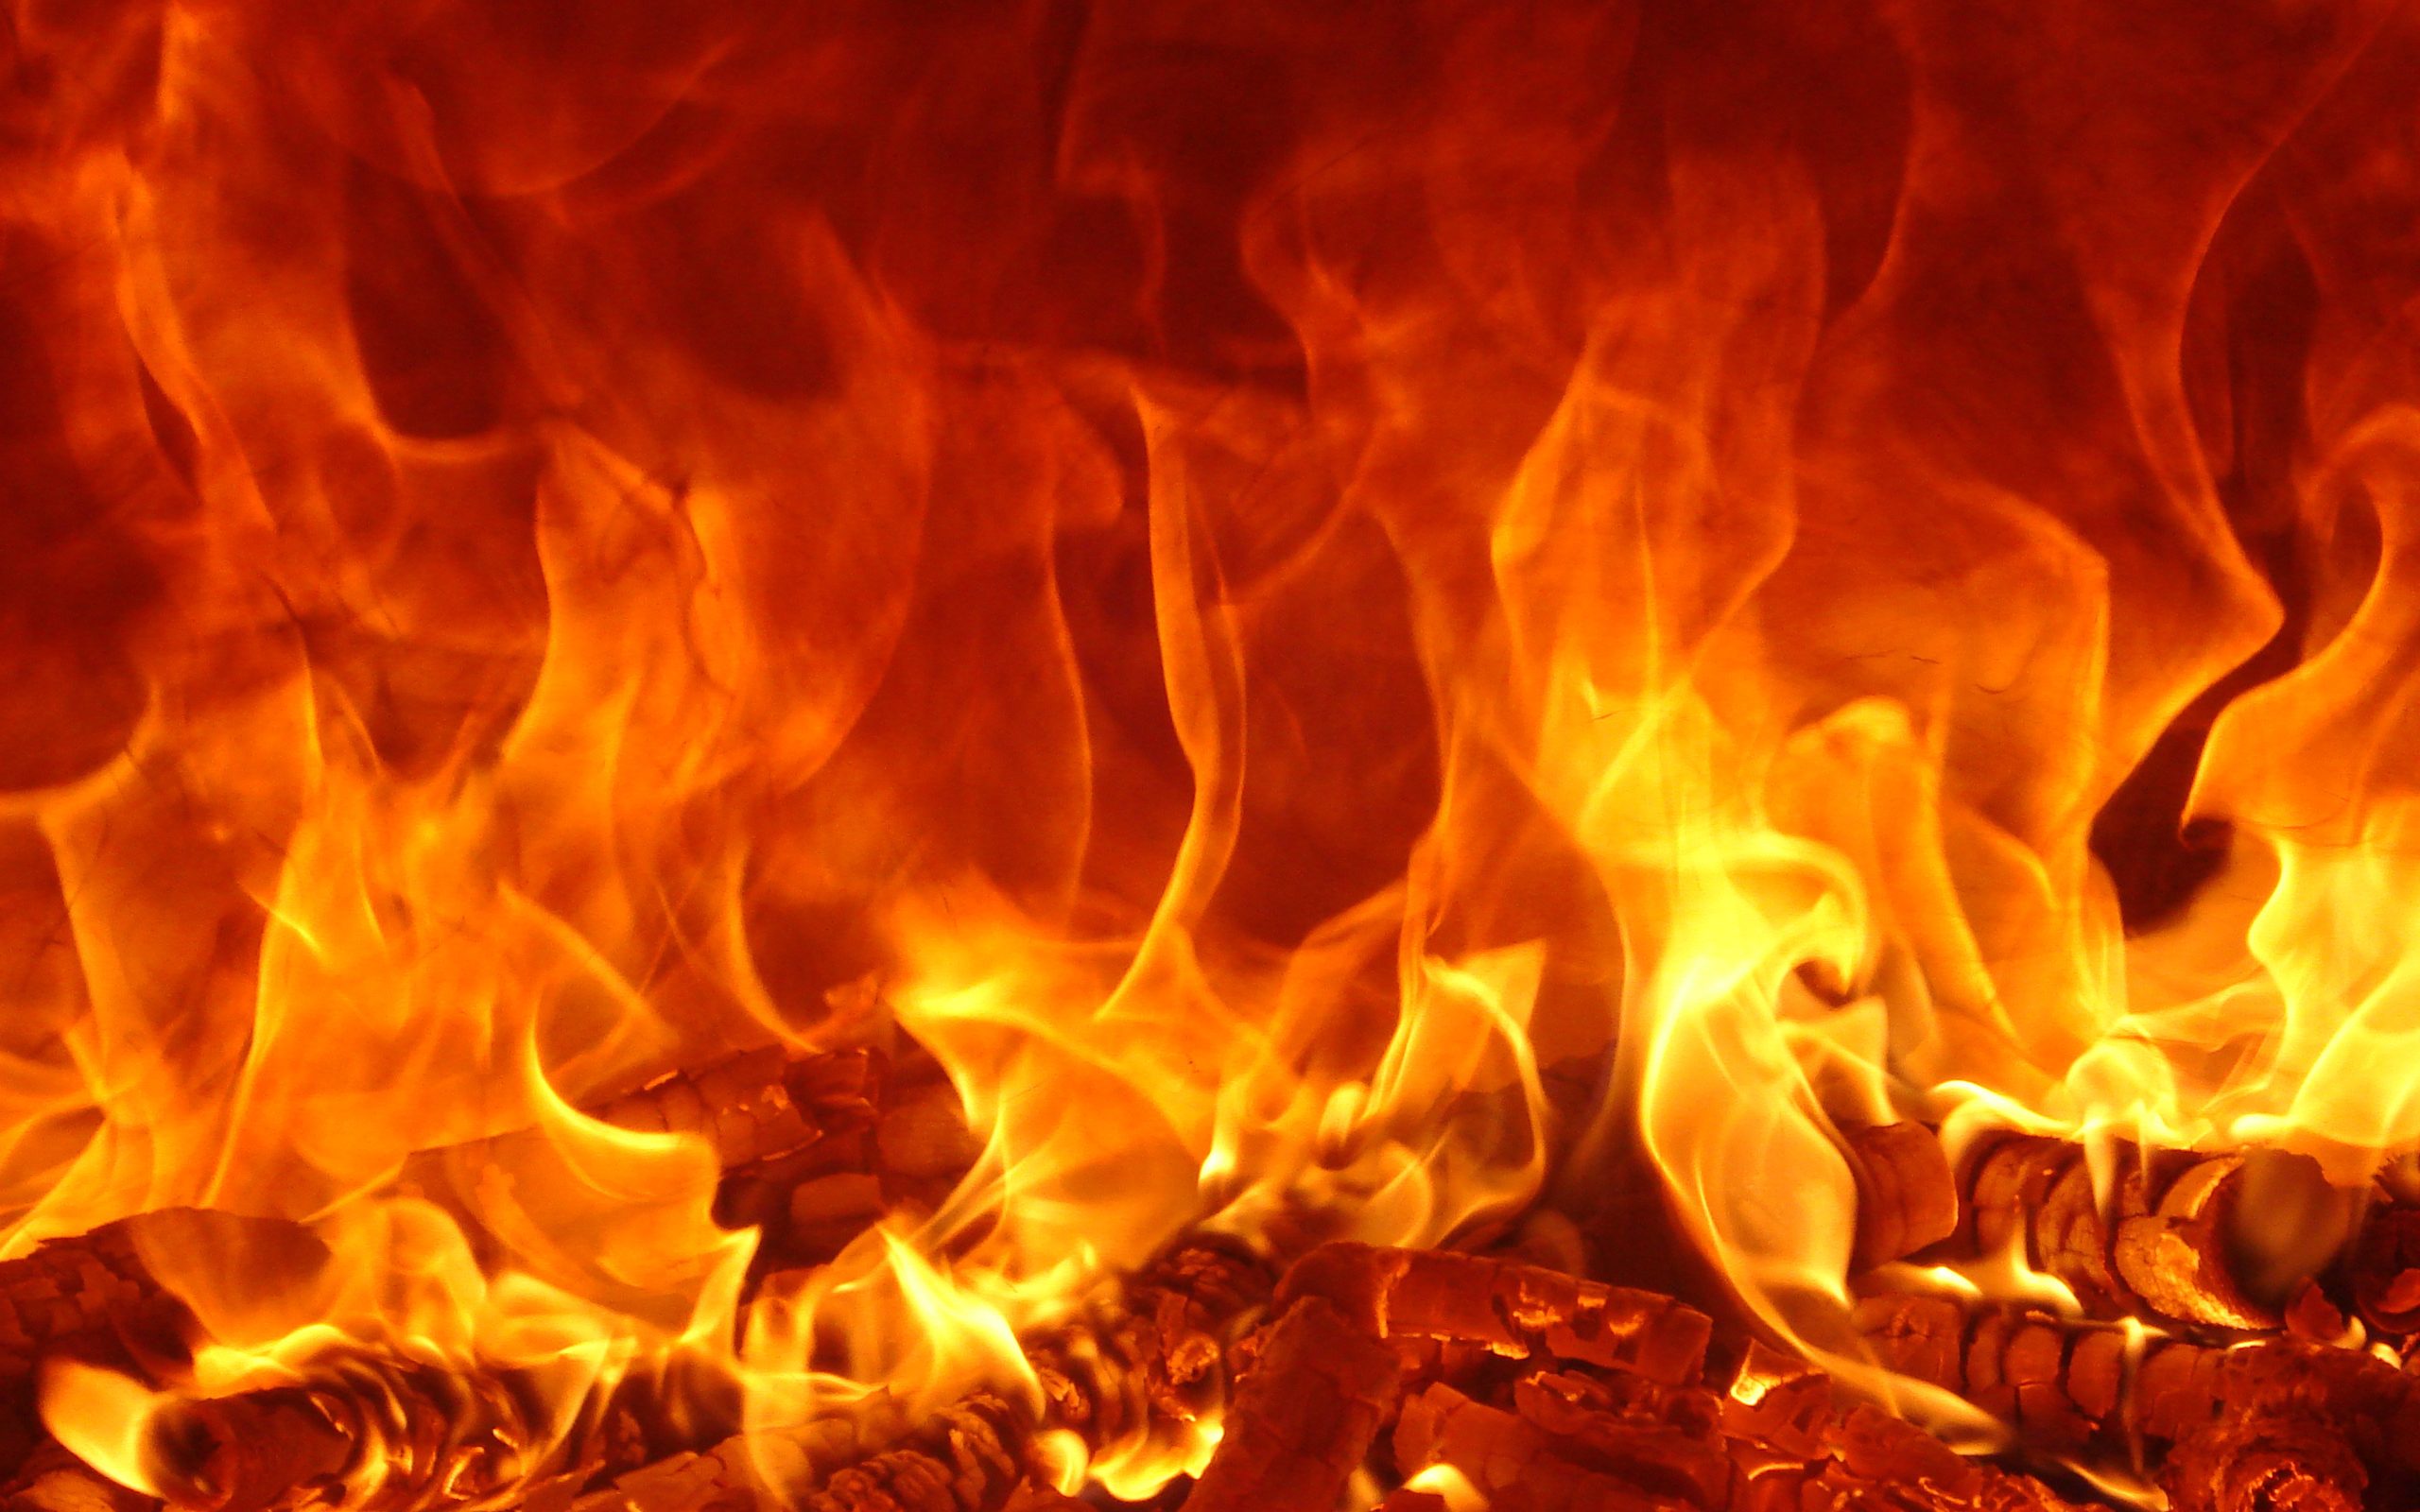 Fire Computer Wallpapers Desktop Backgrounds 2560x1600 Id 410661 2560x1600